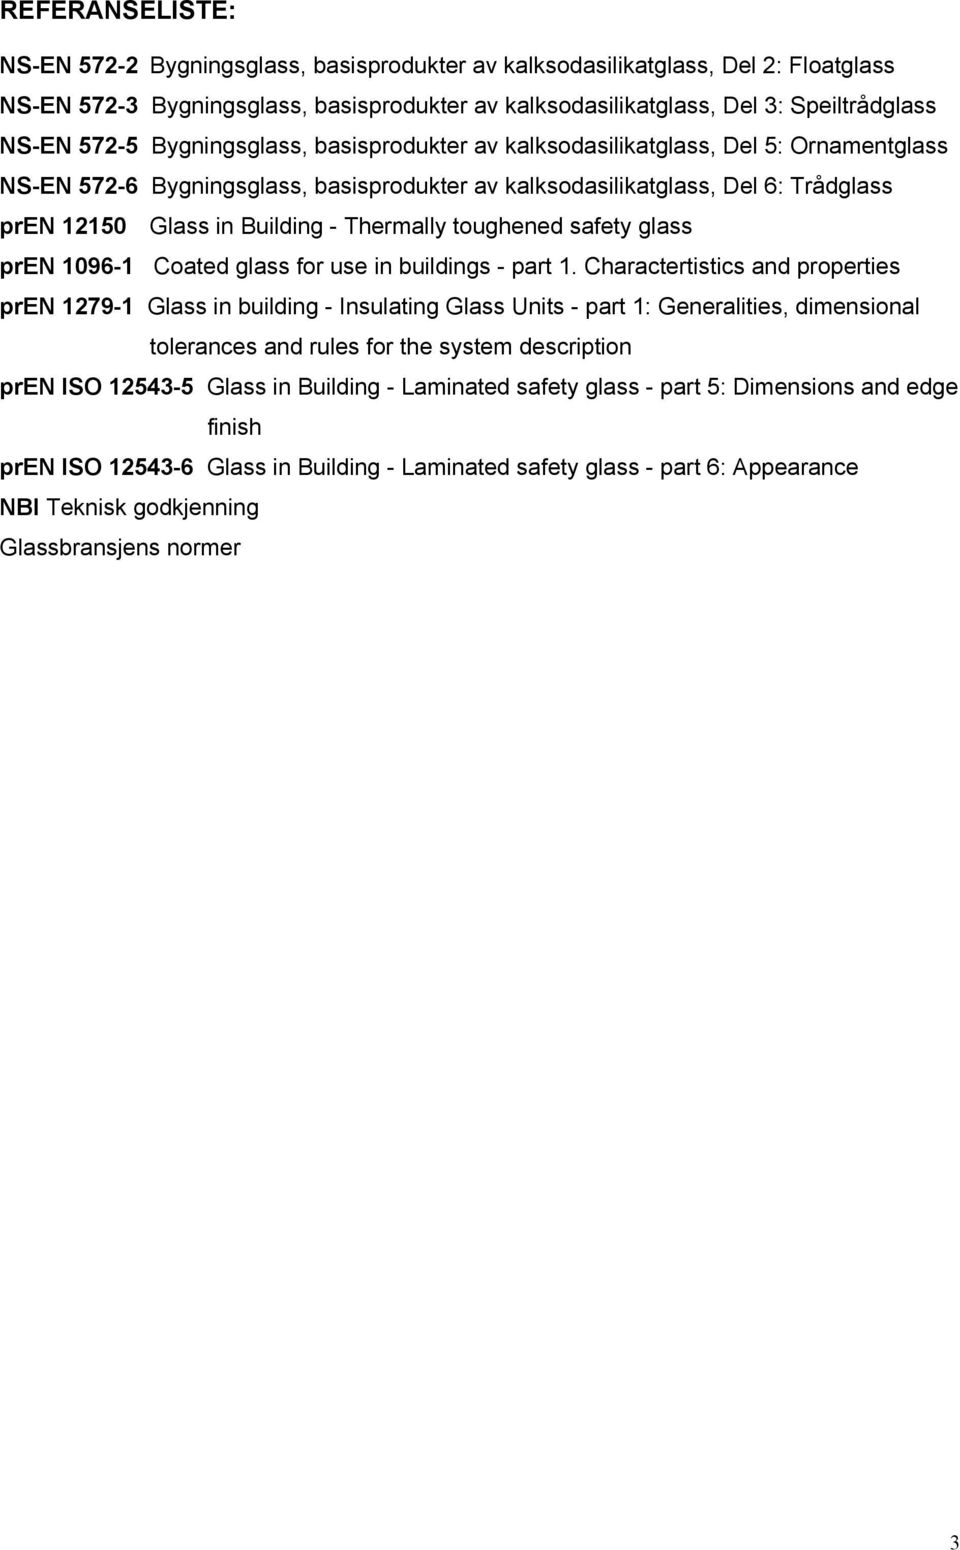 Thermally toughened safety glass pren 1096-1 Coated glass for use in buildings - part 1.